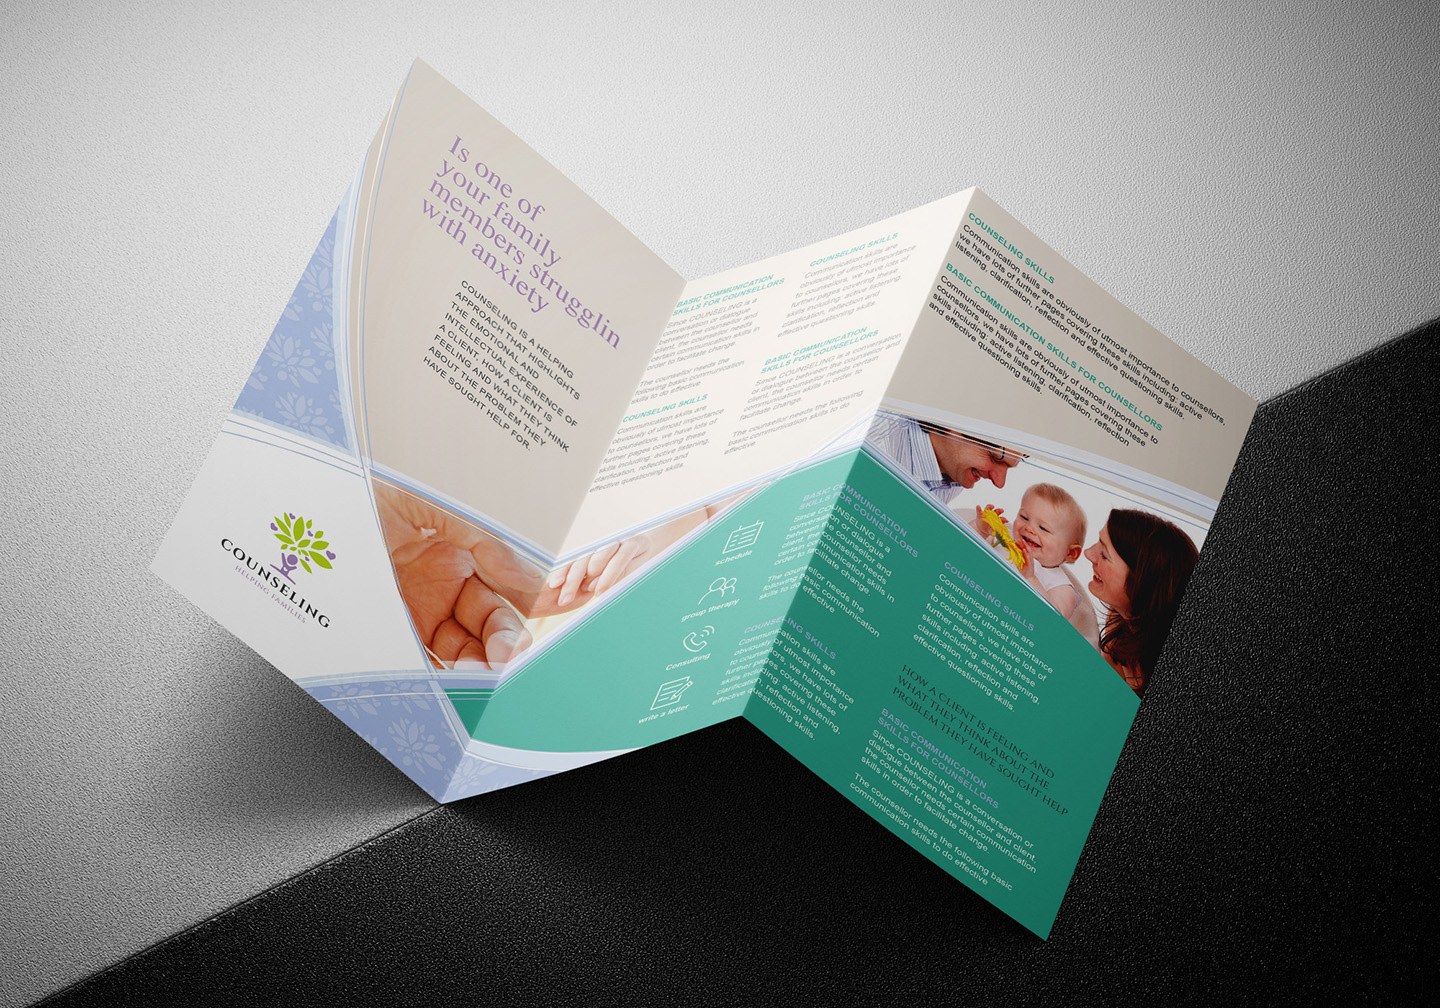 Counselling Service Tri-Fold Brochure Template example image 5